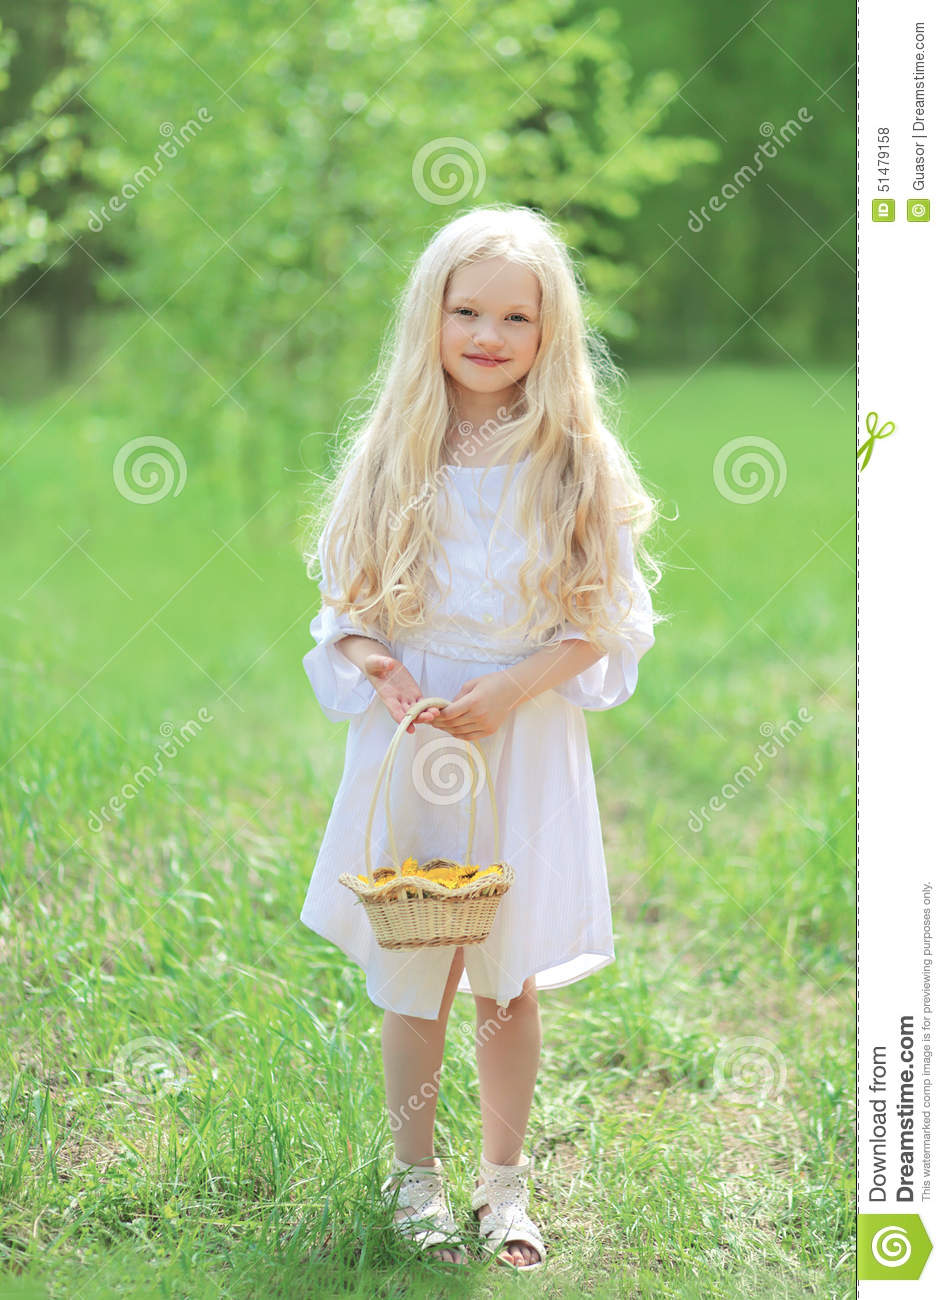 Spring Portrait Of Cute Little Girl In White Dress Stock Photo ...